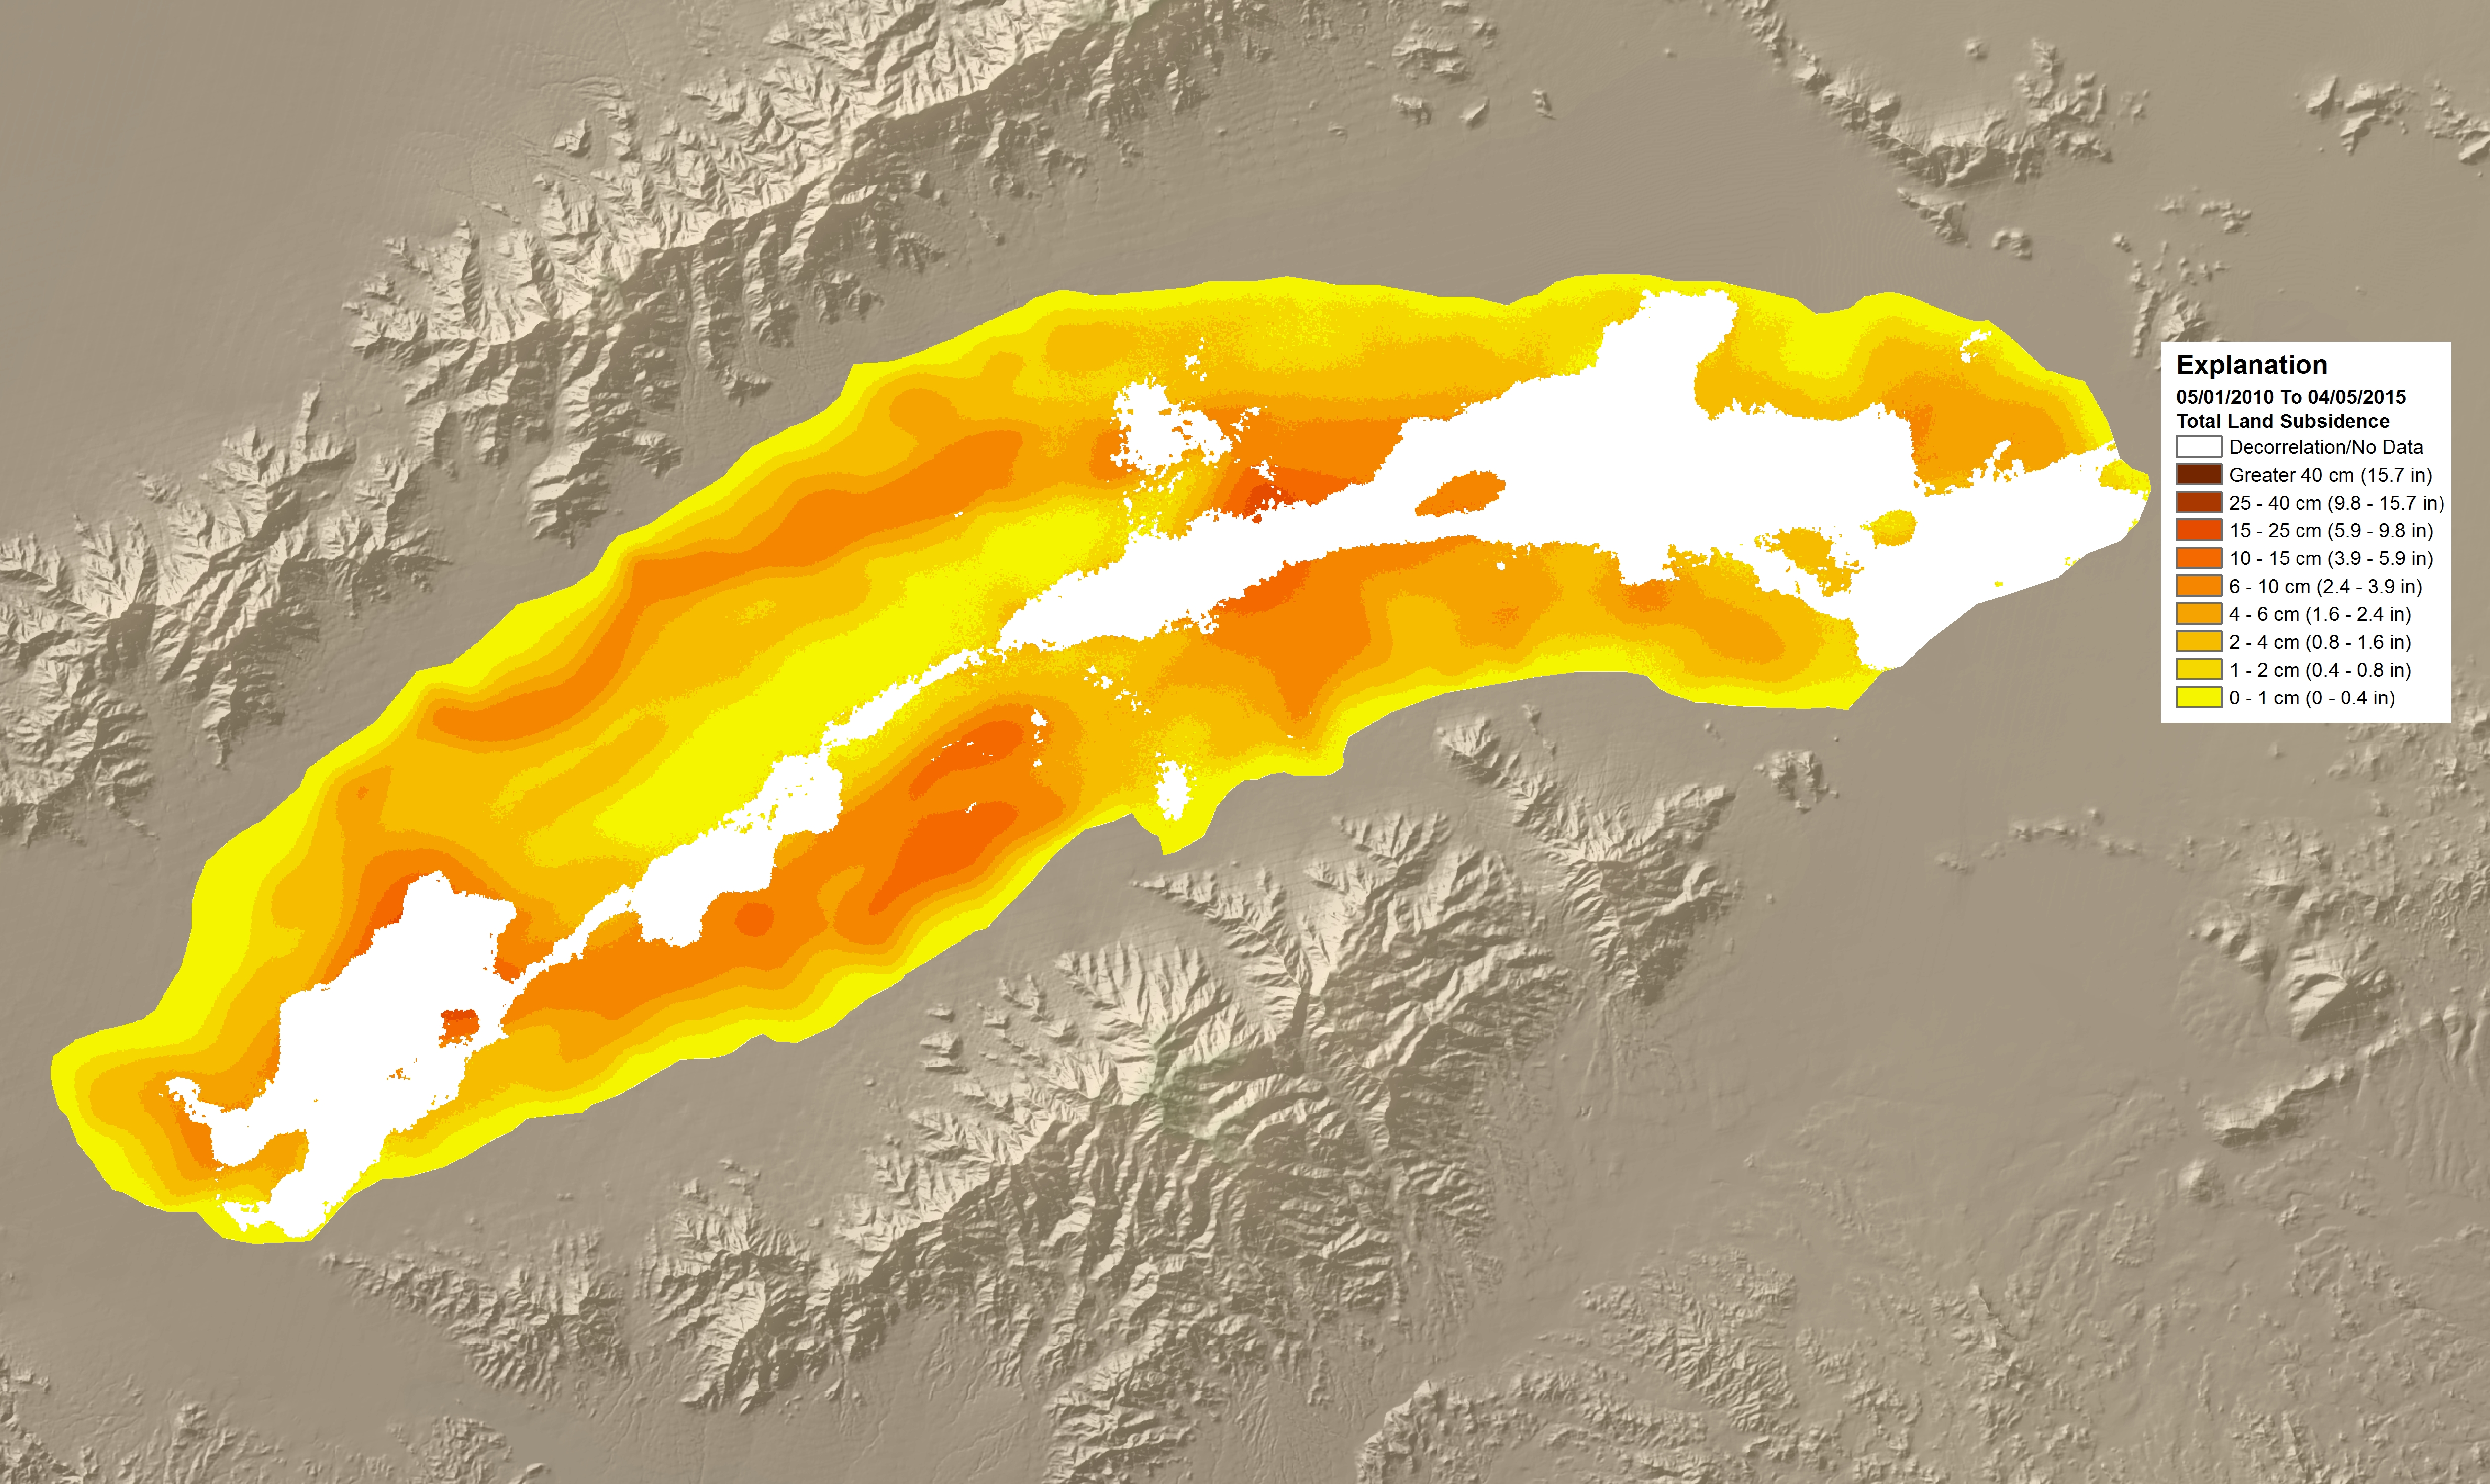 Land subsidence map of the McMullen Valley Groundwater Basin showing subsidence between April 2010 and May 2015. Yellow areas indicate subsidence of 0-0.4 in (0-1 cm); orange areas indicate subsidence of 1.6-3.9 in (4-10 cm); red areas indicate subsidence of 3.9-9.8 in (10-25 cm). Image courtesy of the Arizona Department of Water Resources.